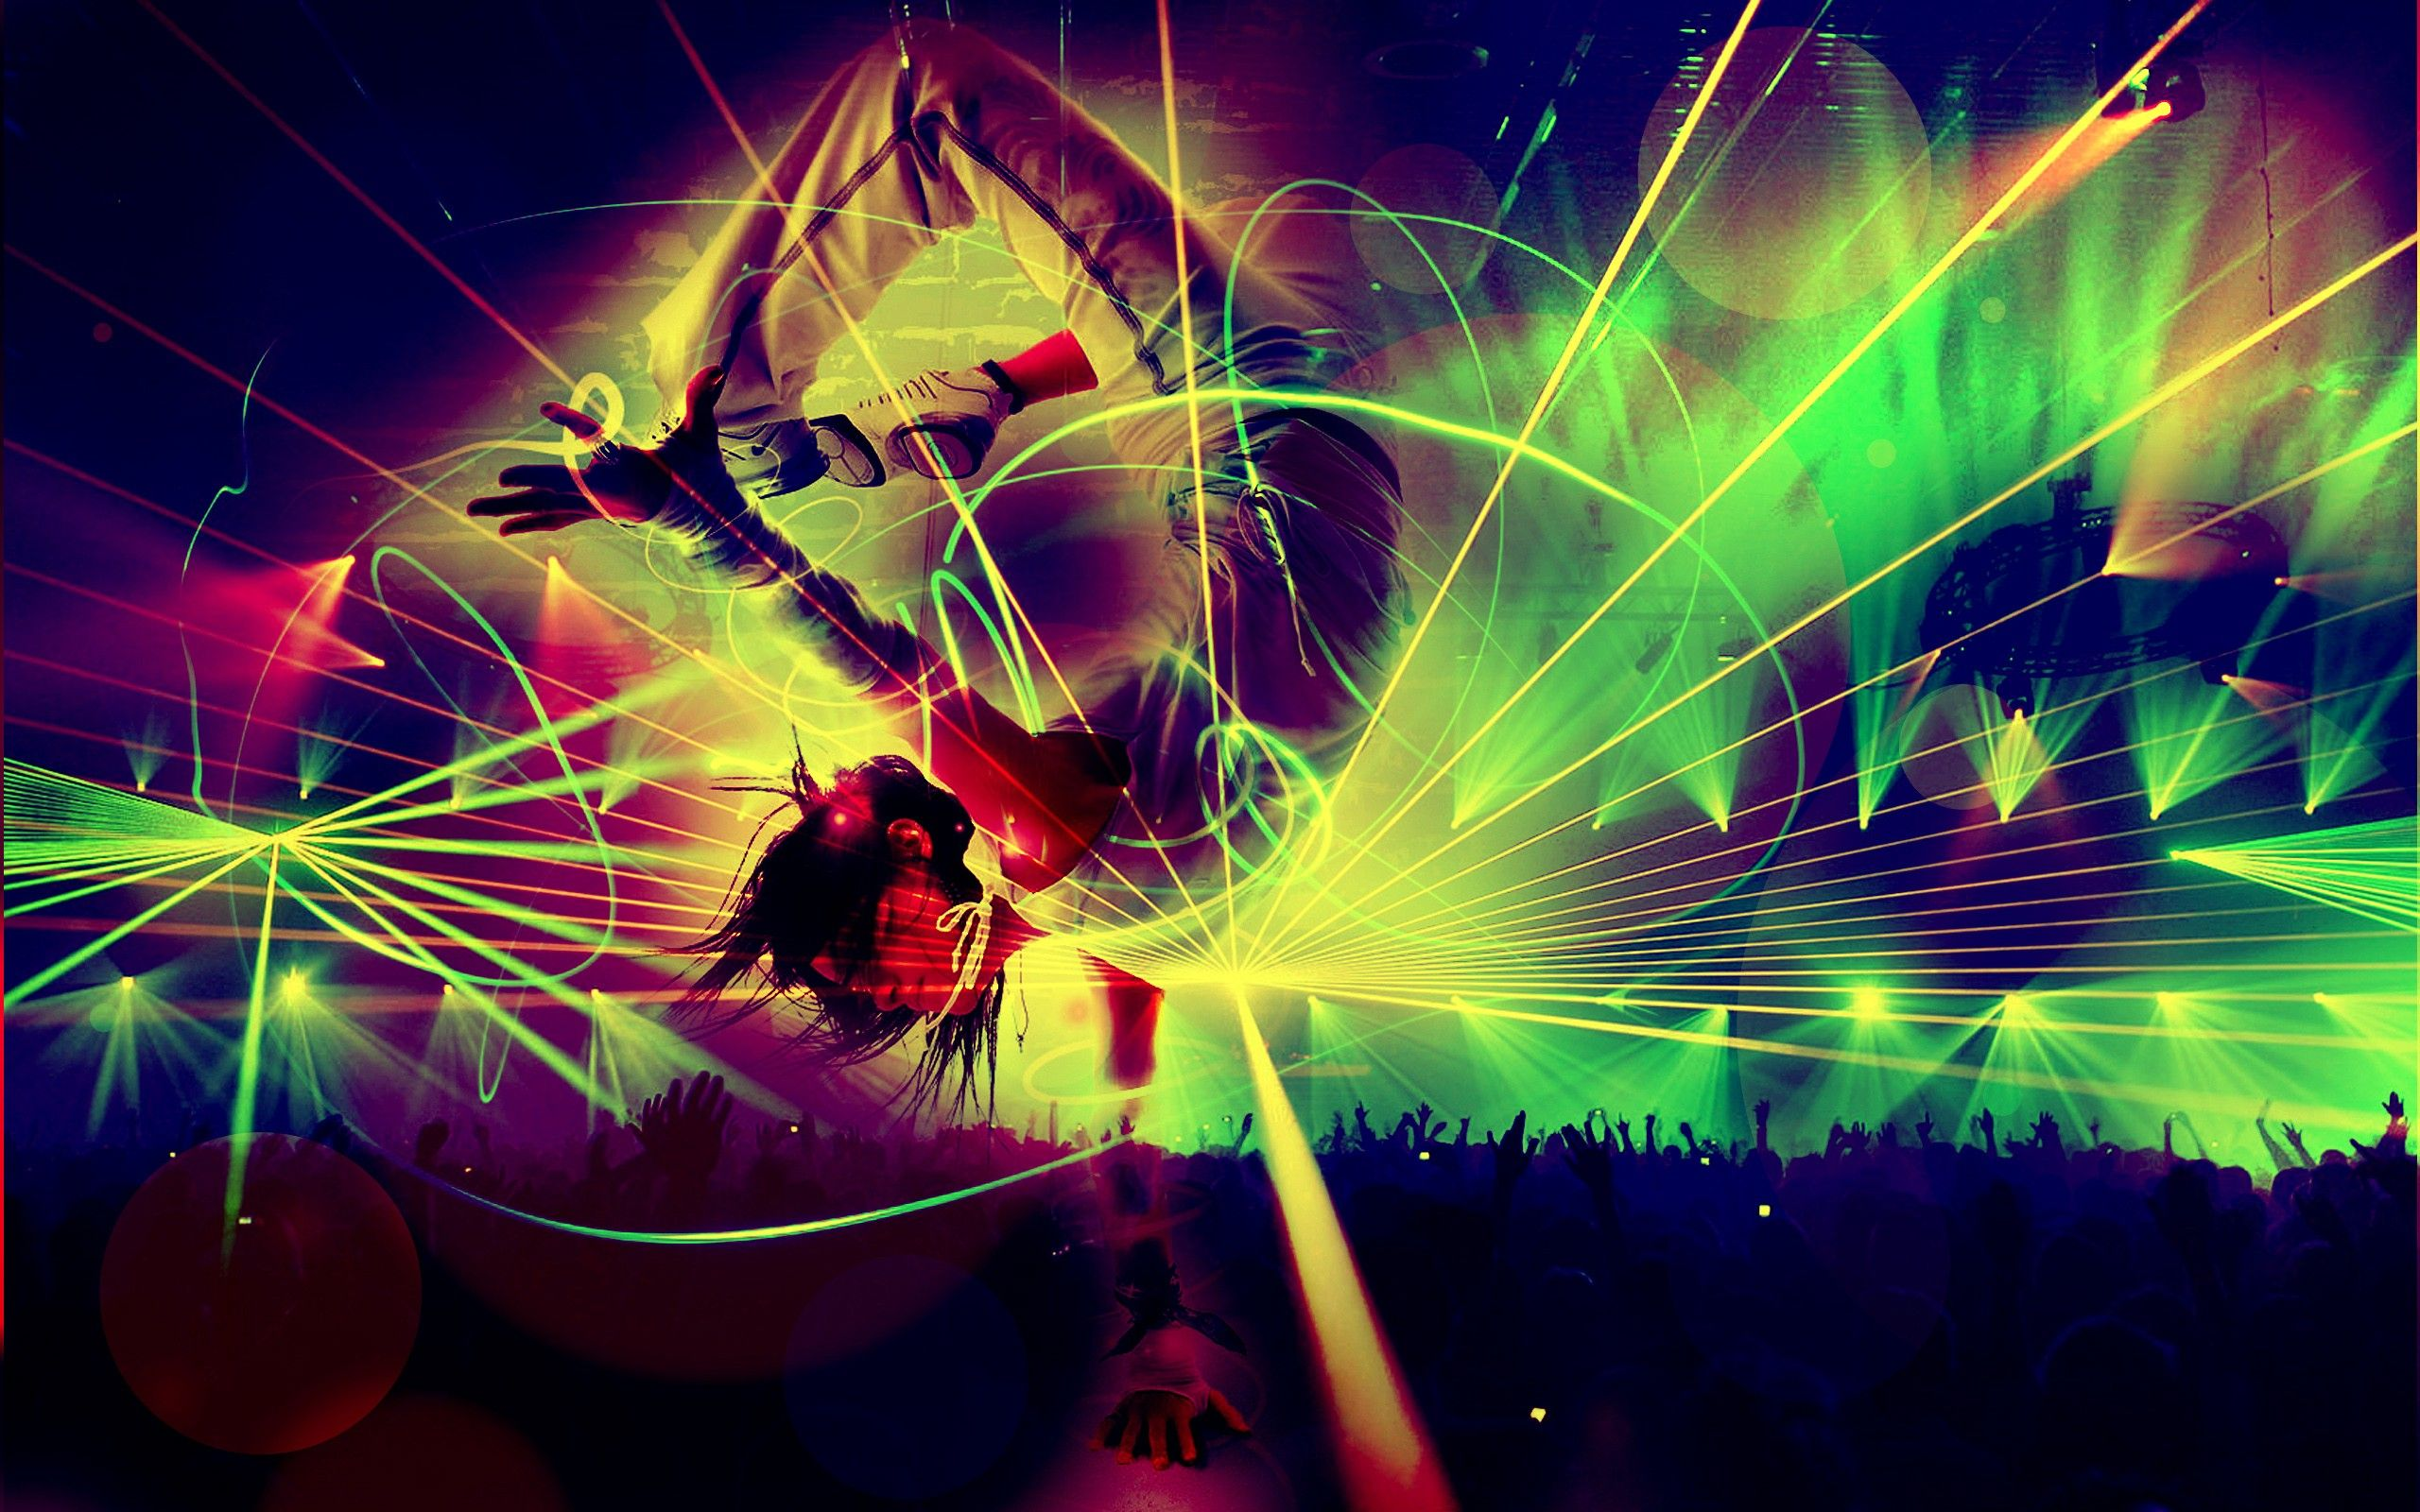 Party Dance Psychedelic Rave Dancing Wallpaper Cool Backgrounds Dance Workshop